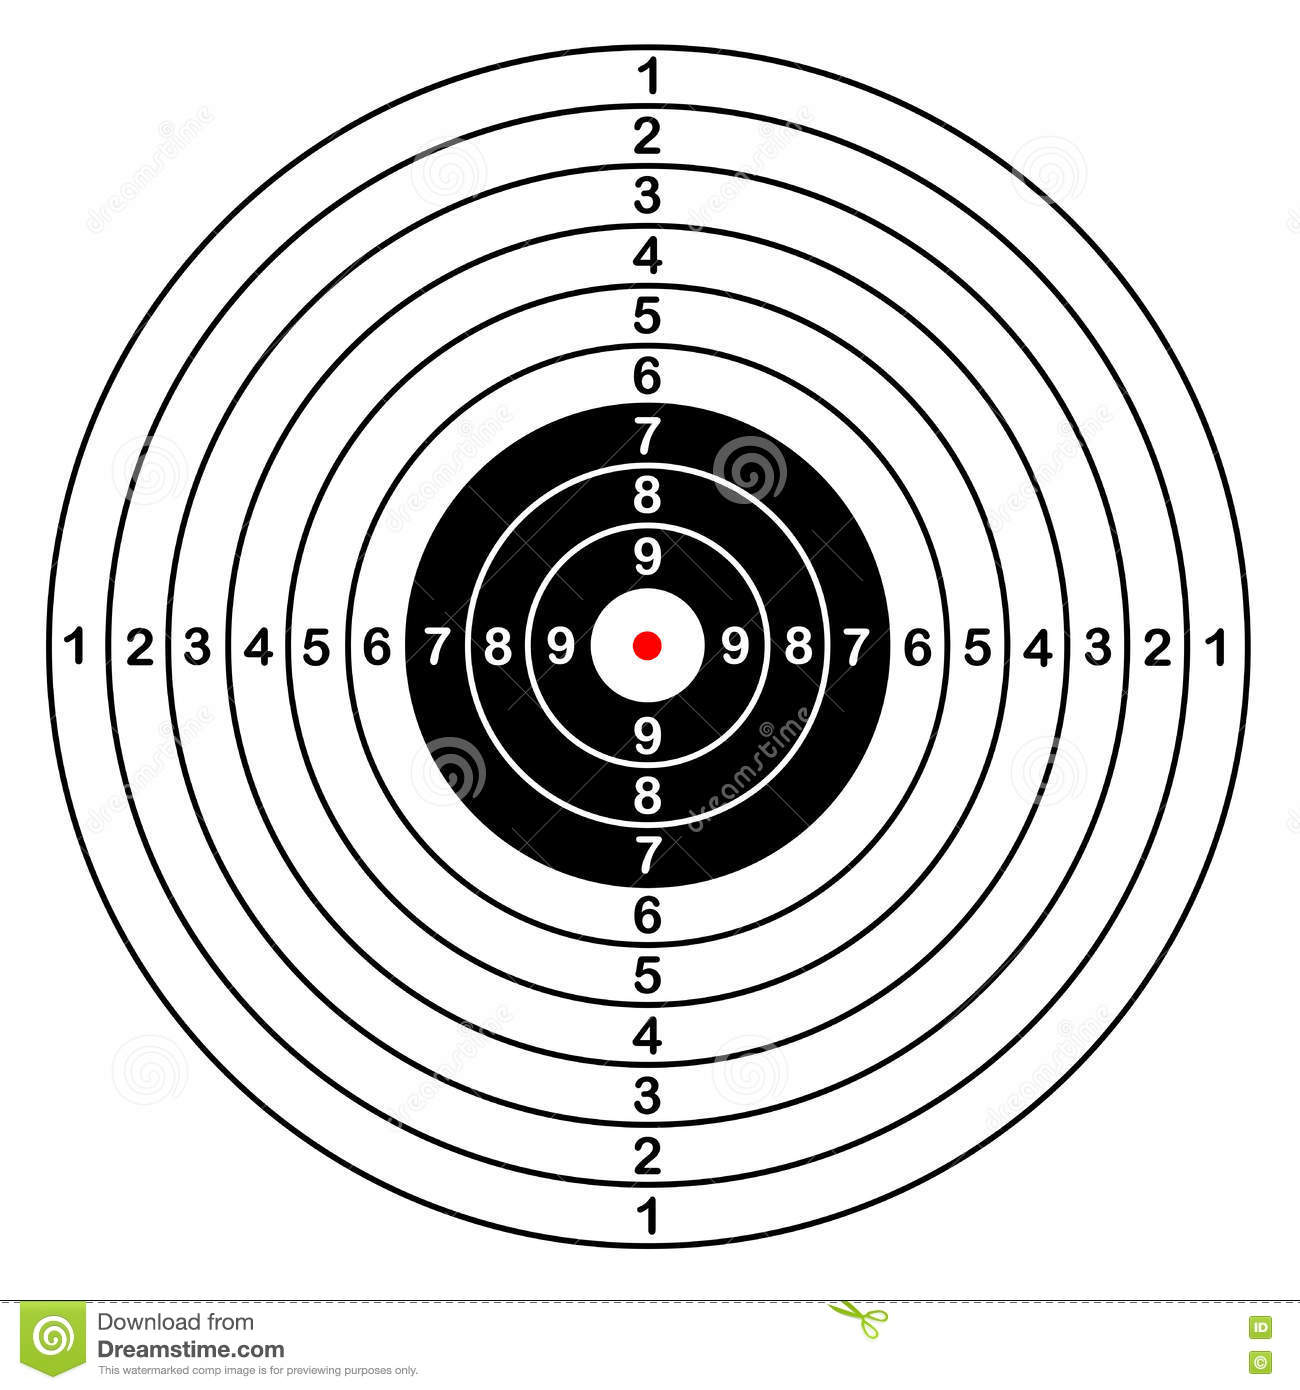 Archery Shooting Range Diagram